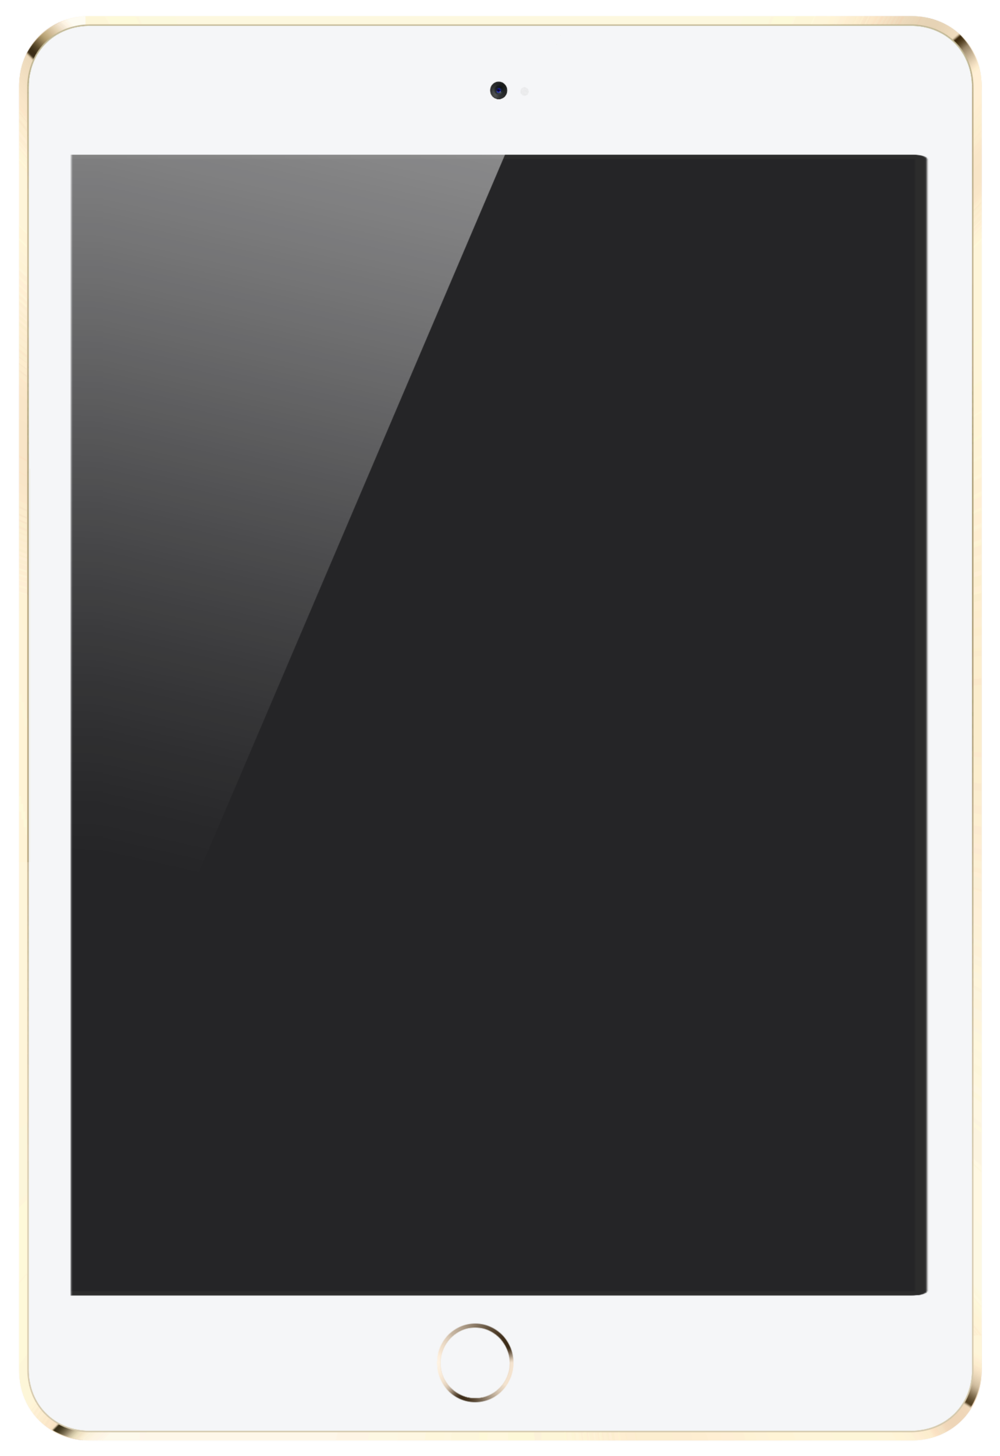 IPad-Air-PNG-Image1.png